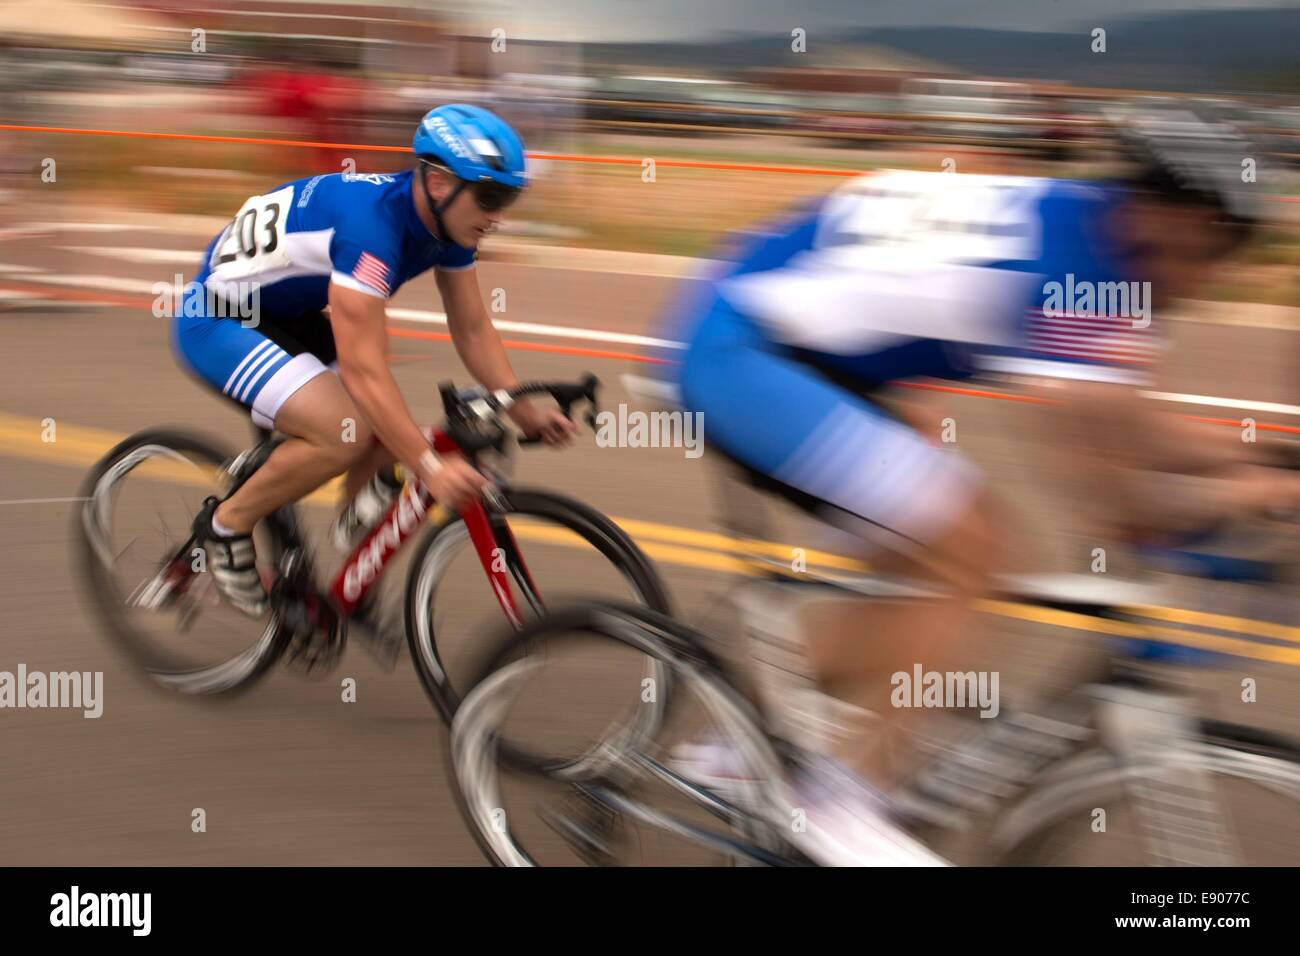 U.S. Air Force Capt. Mitchell Kieffer and Senior Master Sgt. Jason Hoover compete in the men's open cycling event Stock Photo